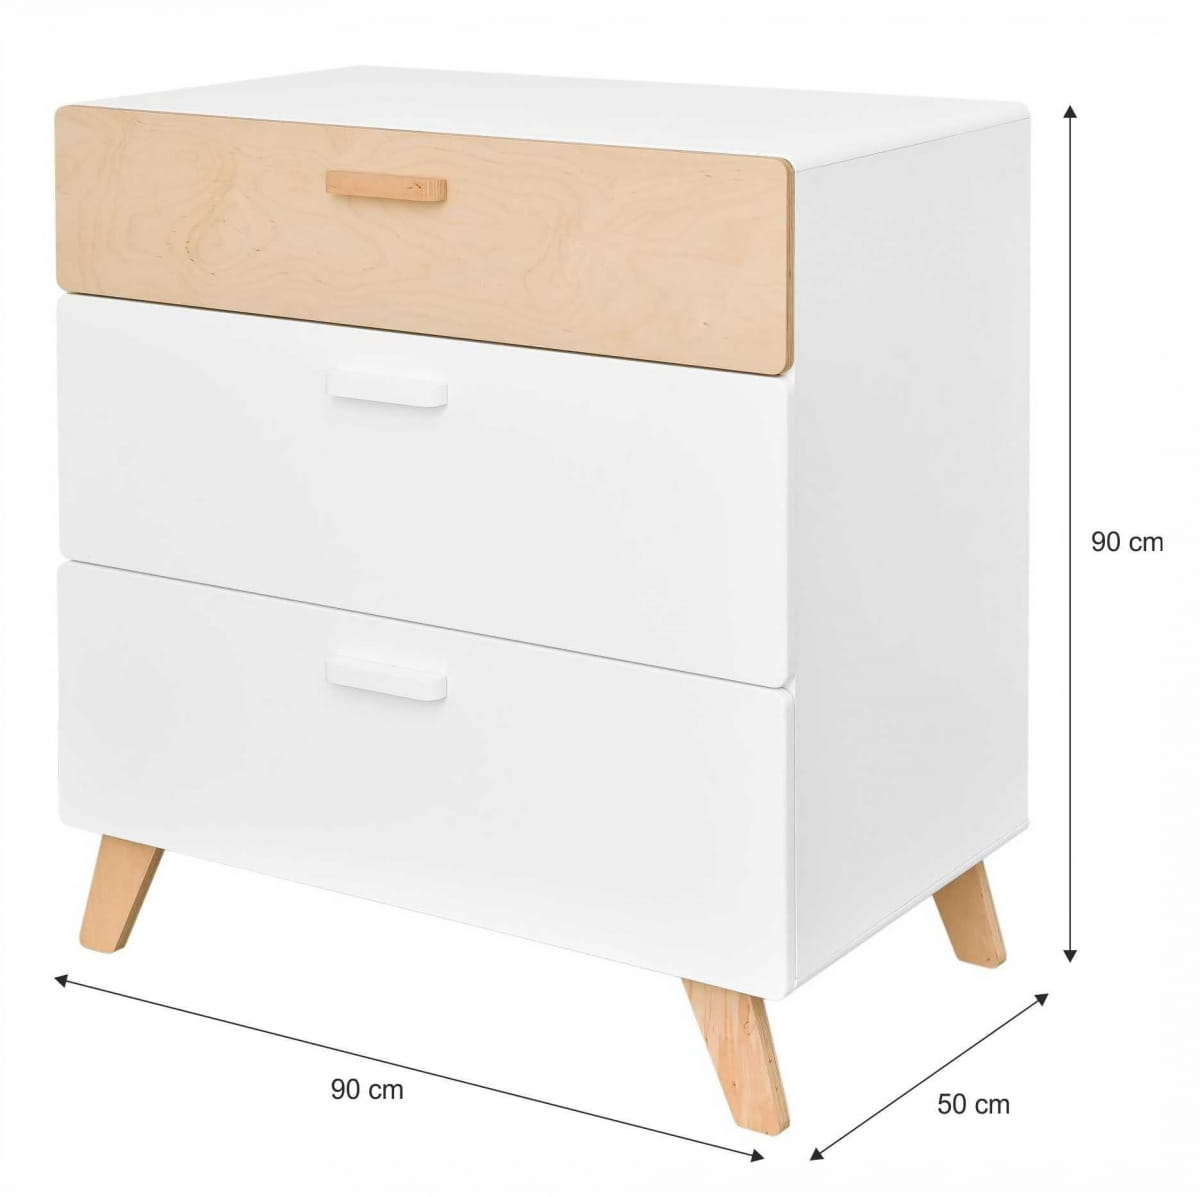 Hoppa_chest_of_drawers_w1.jpg